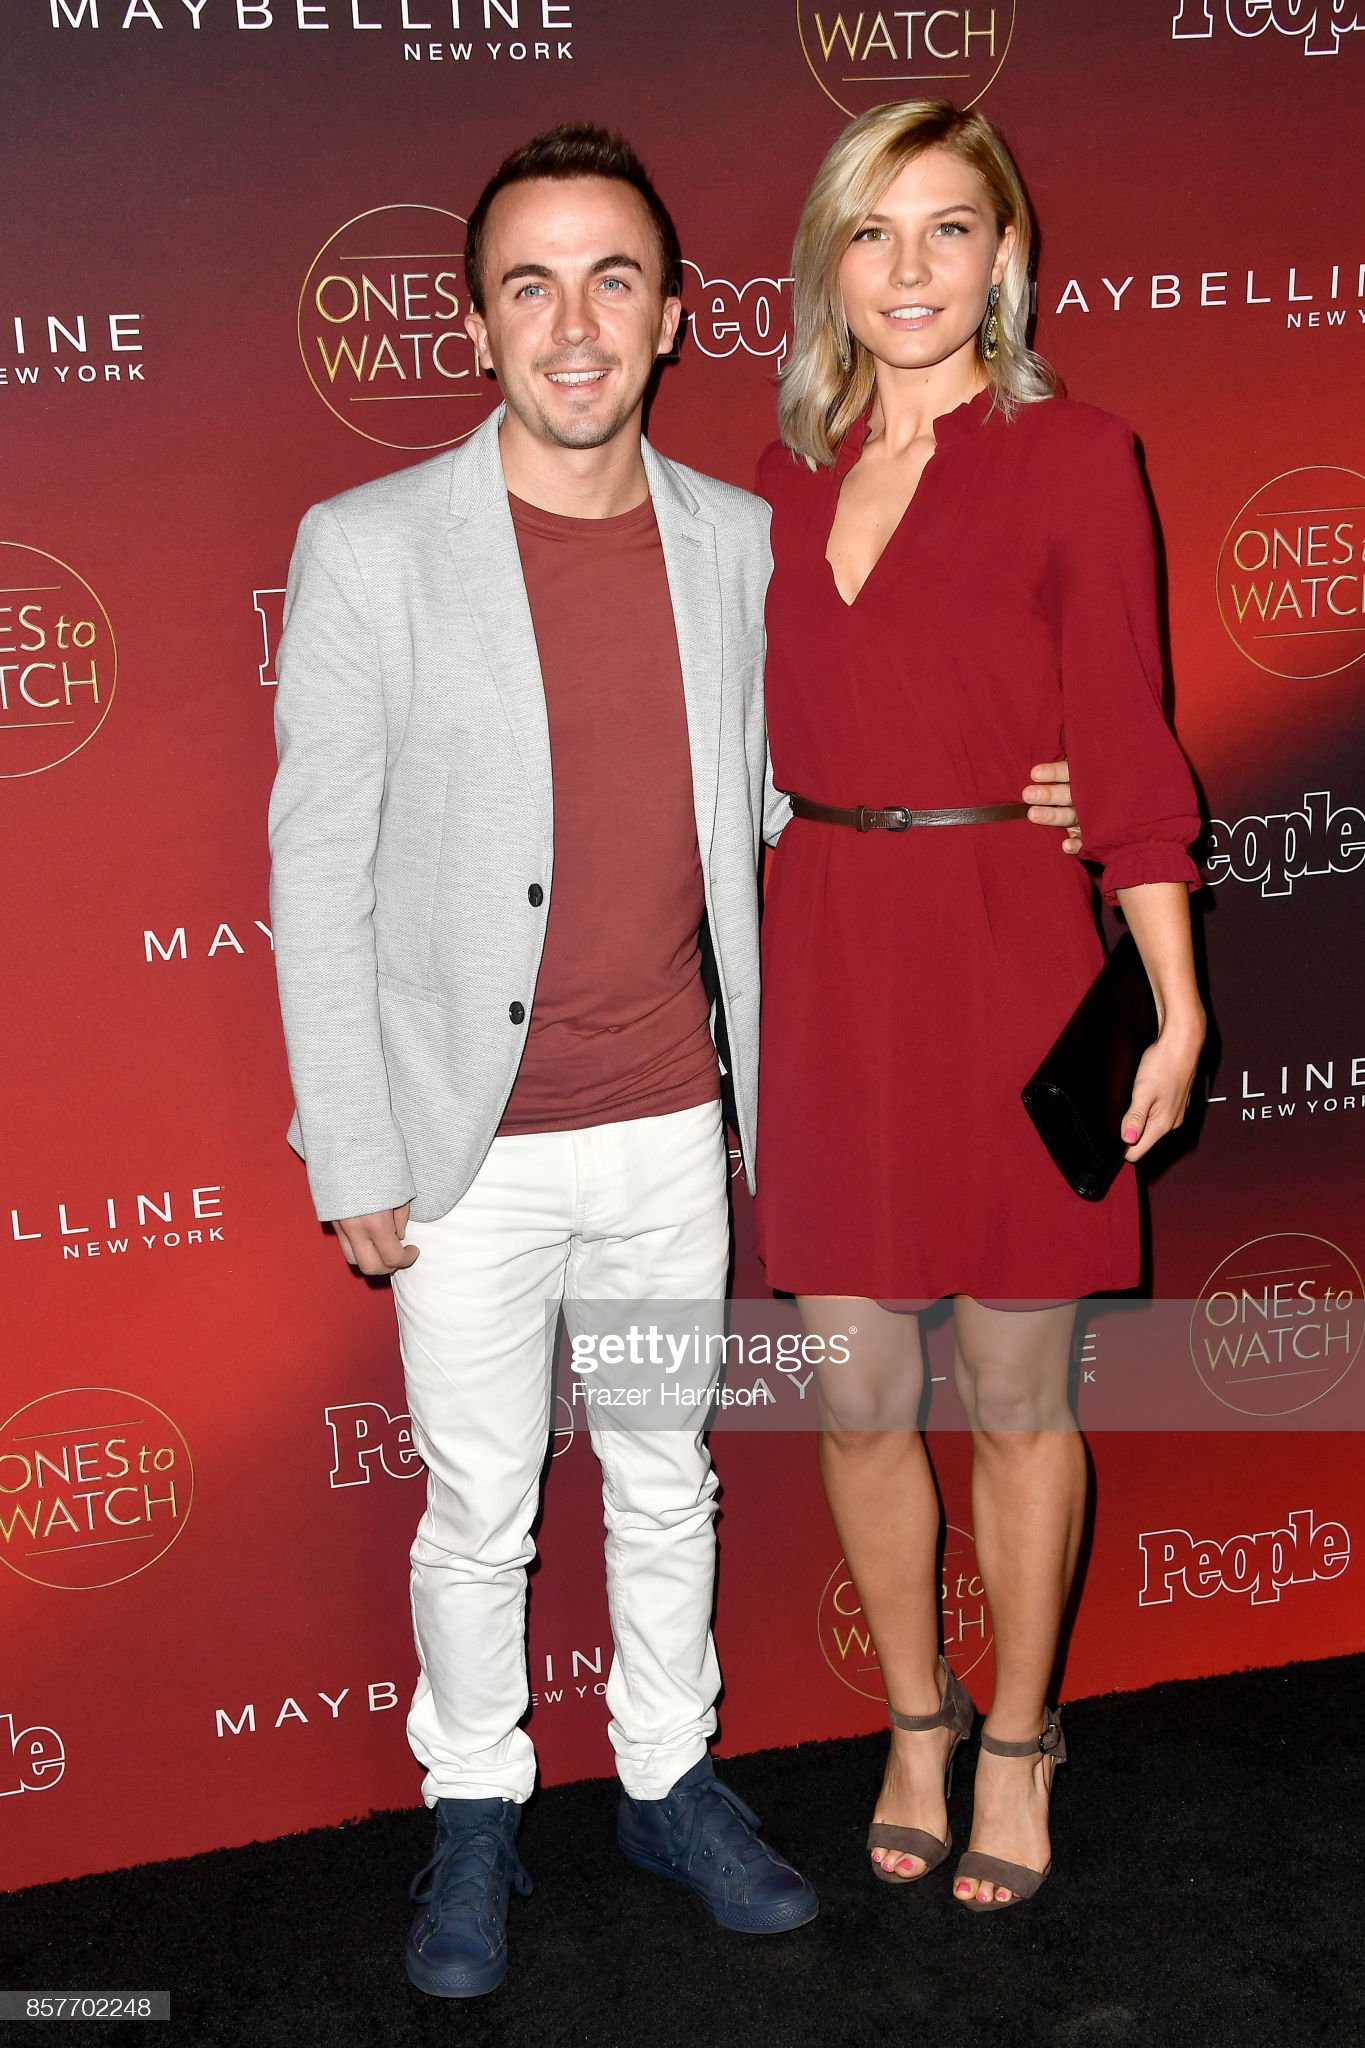 ¿Cuánto mide Frankie Muniz? - Altura - Real height Frankie-muniz-and-paige-price-attend-peoples-ones-to-watch-at-on-4-picture-id857702248?s=2048x2048